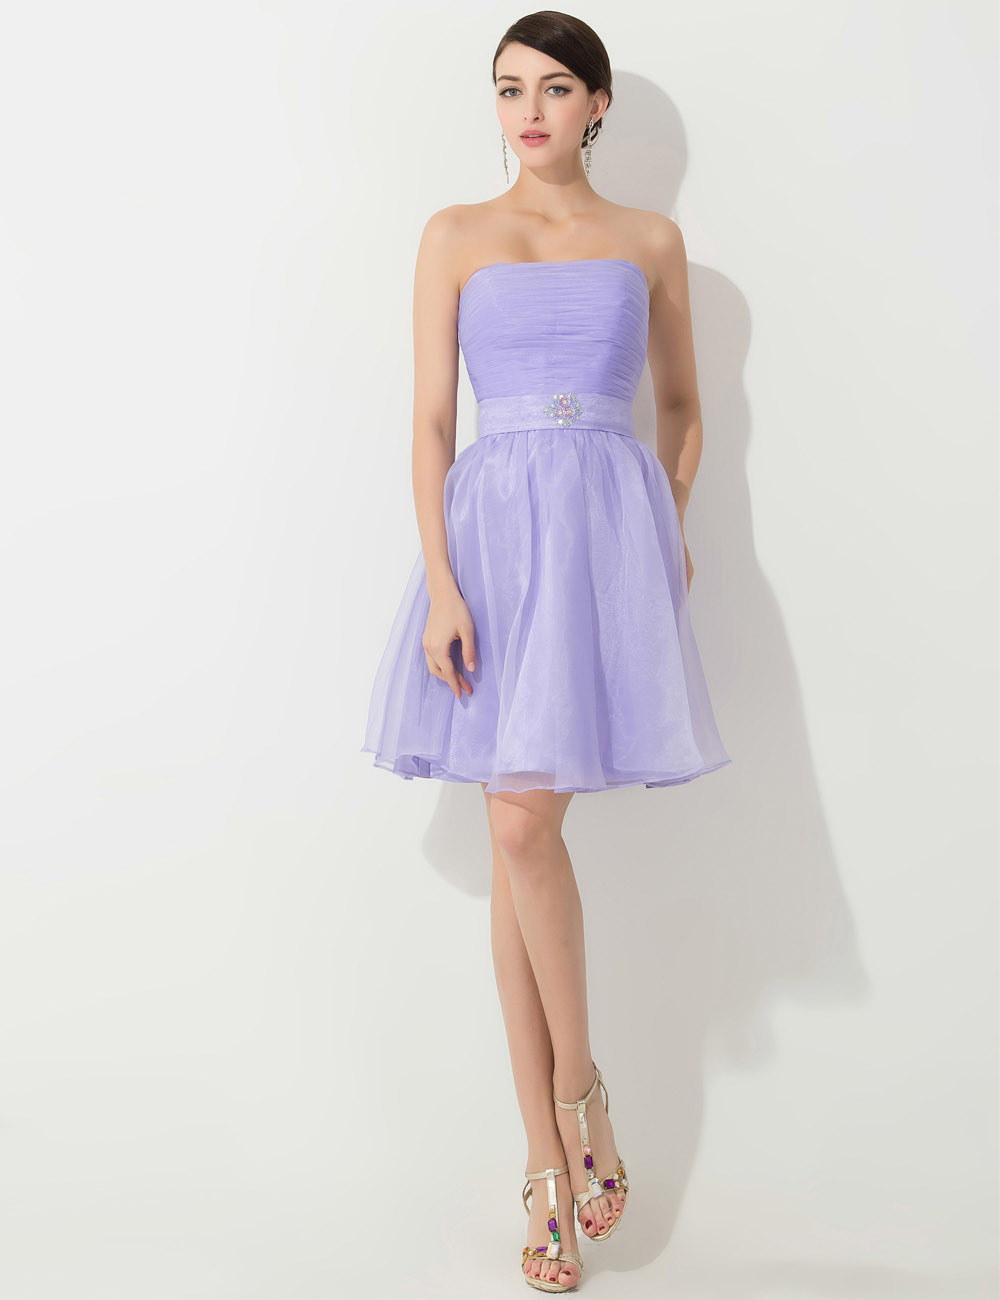 Sheath/Column Sweetheart Floor-length Chiffon Graduation Dress